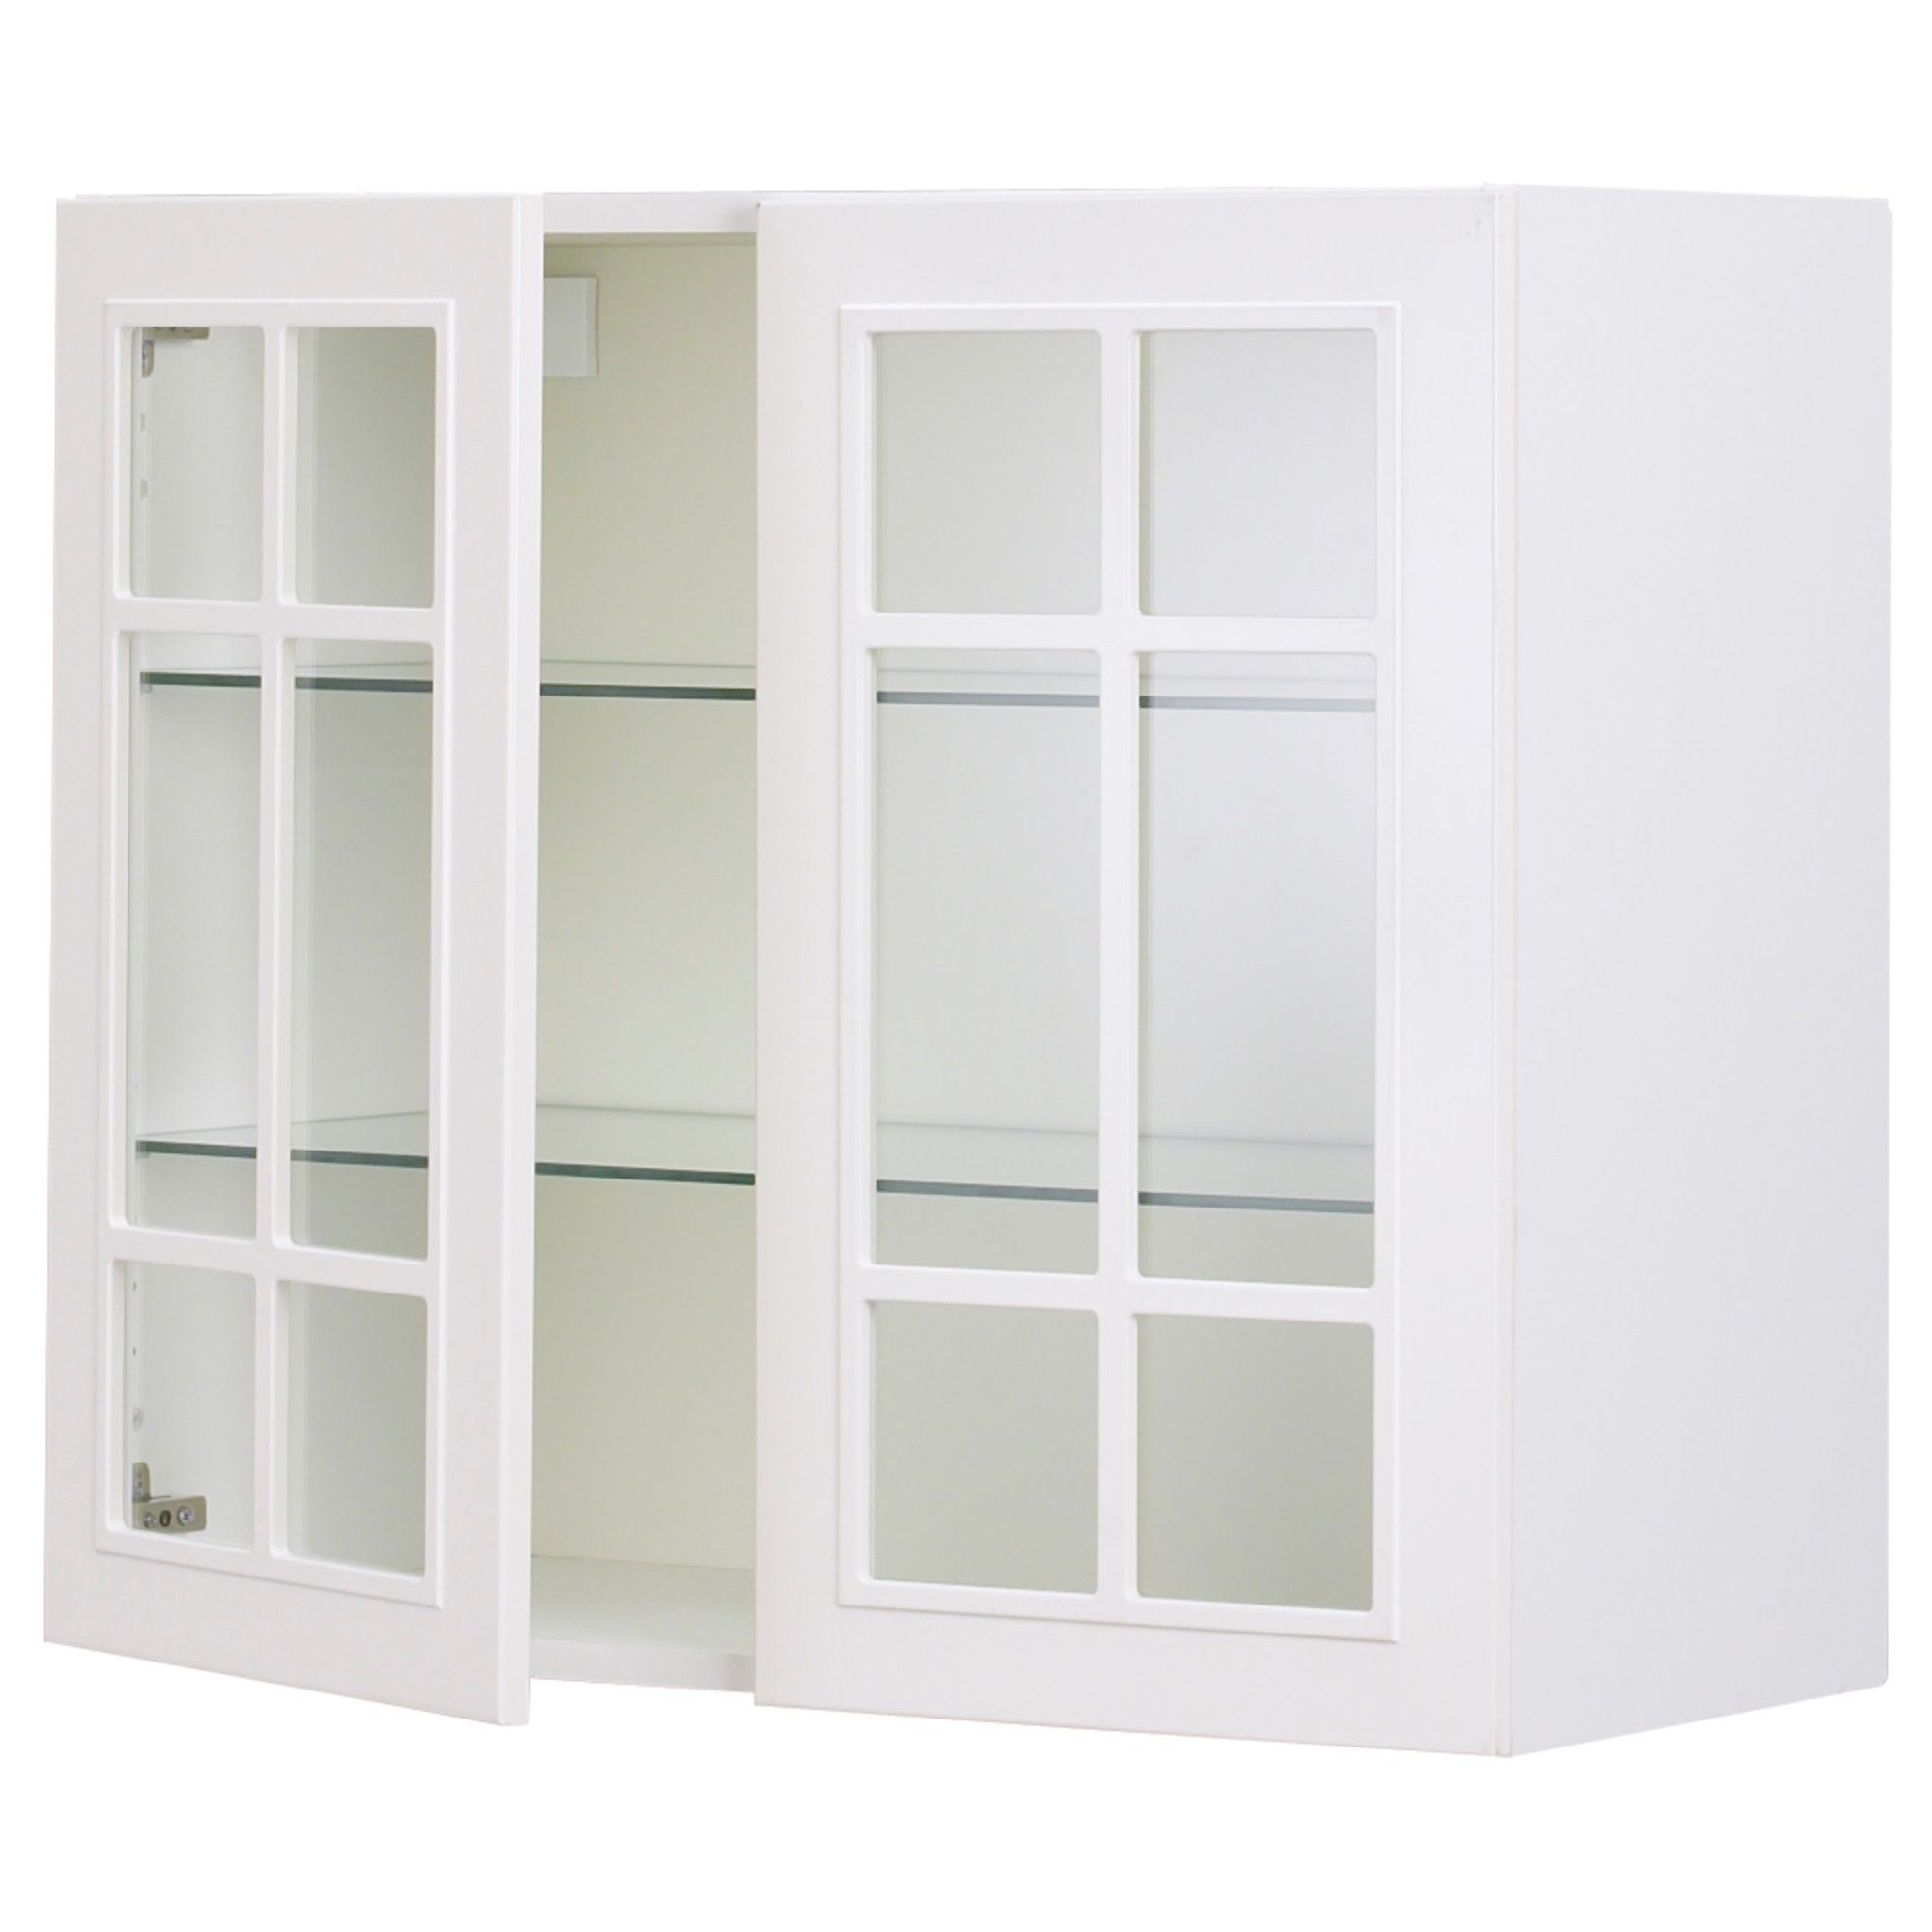 $215 - 30 x 30 glass front wall cabinet. AKURUM Wall cabinet with ...